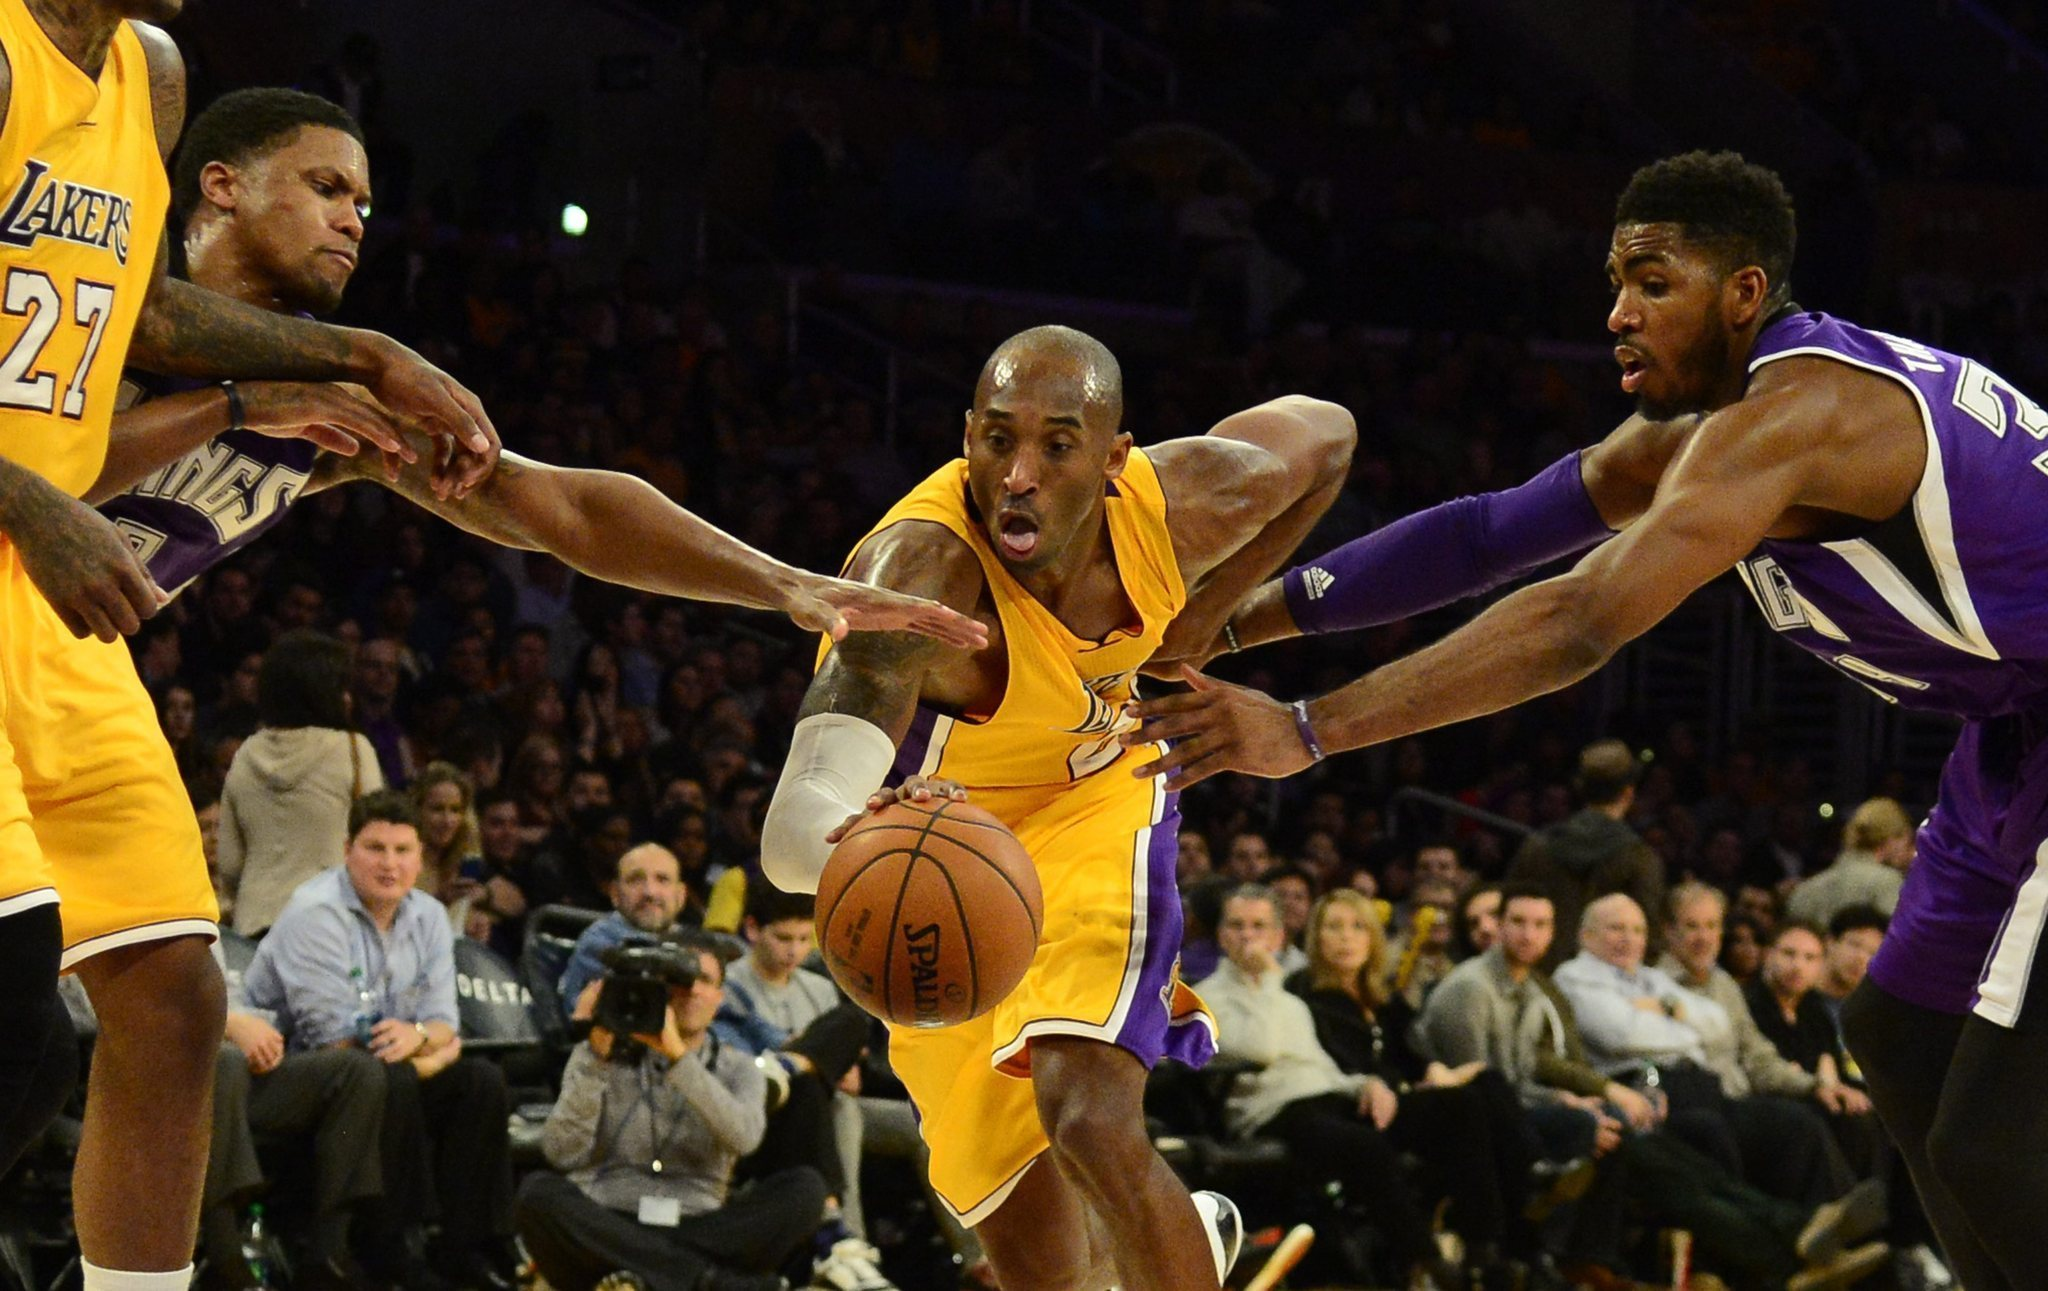 Up next for Lakers: at Sacramento Kings on Sunday